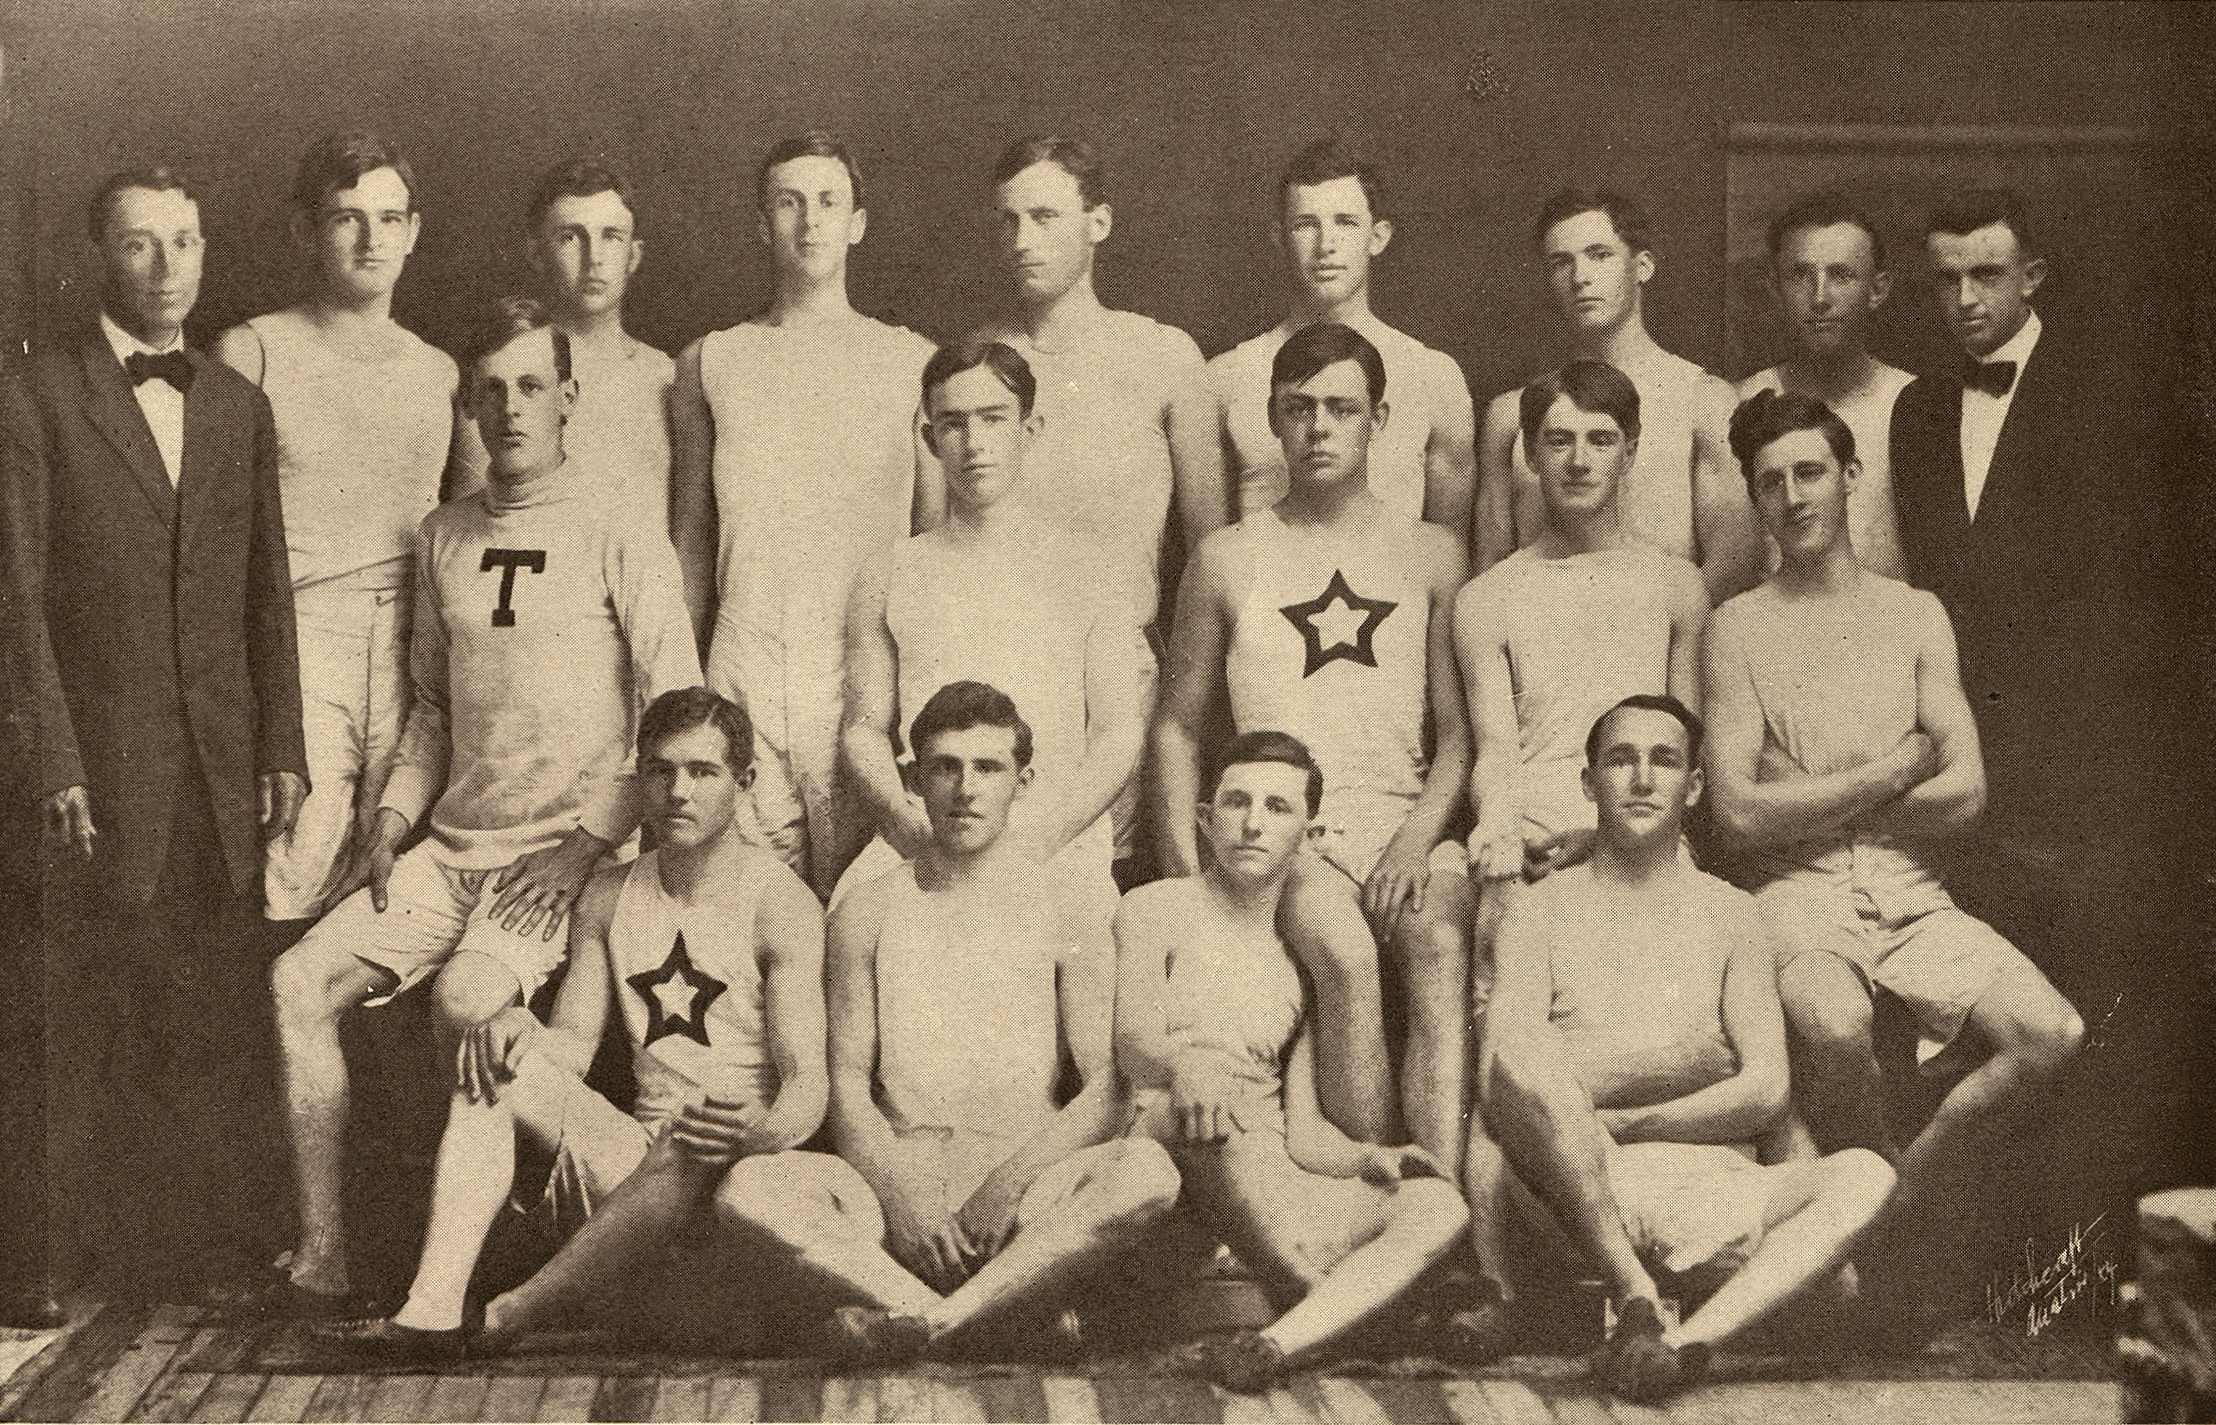 University of Texas track team, 1909